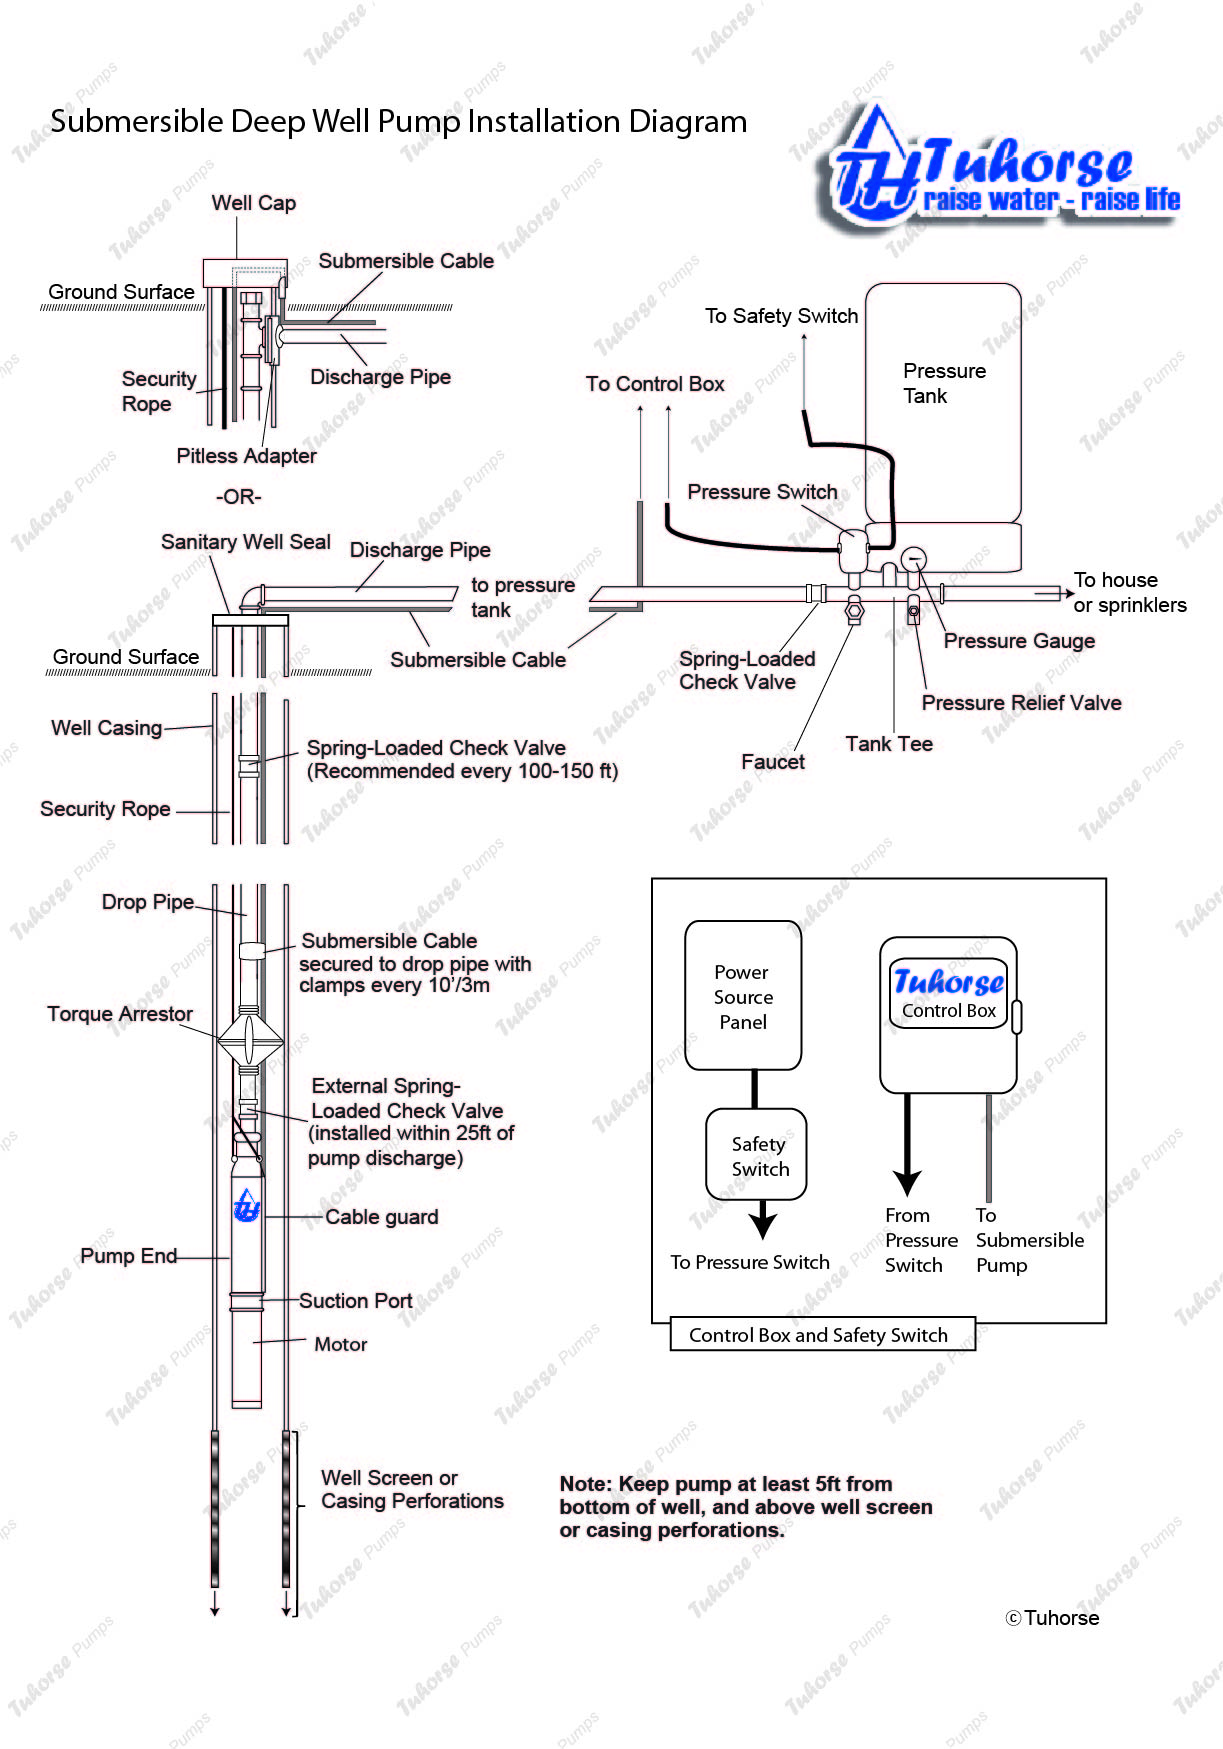 hight resolution of jacuzzi well pump wiring diagram wiring library diagram moreover pool pump piping diagram furthermore hot tub wiring